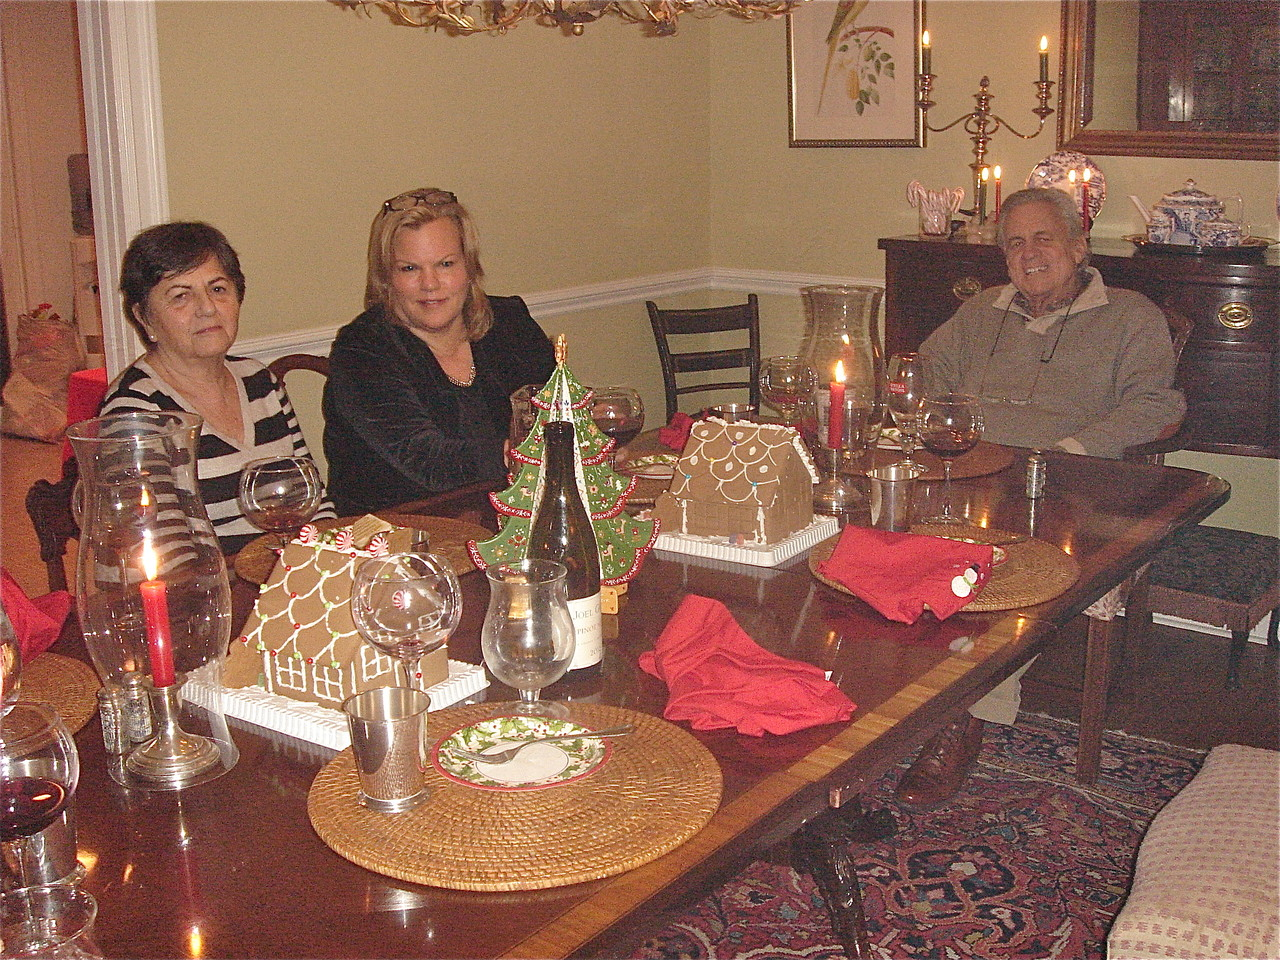 Beatrice, Celeste Gudas, & Stuart Kagel Sr. at Xmas Day Dinner, Kagel residence!